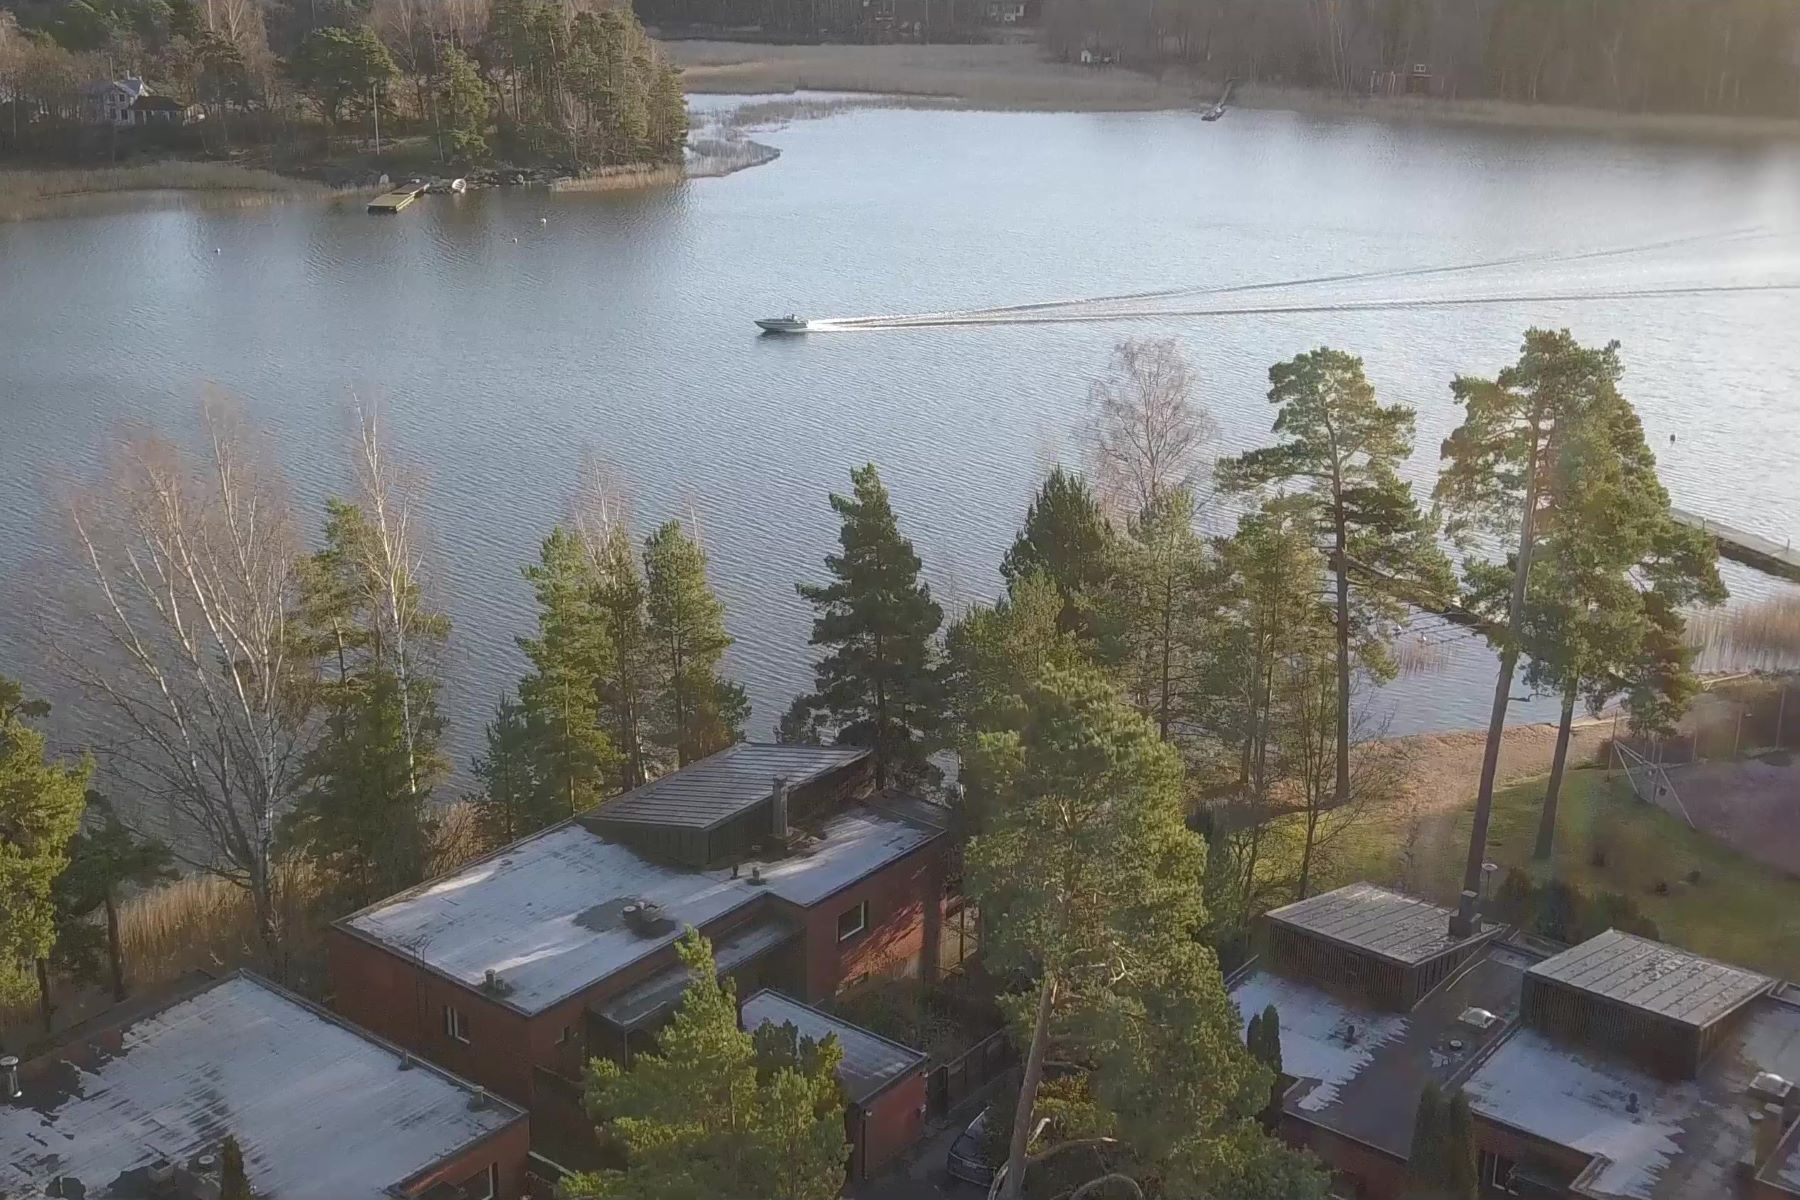 Single Family Homes for Sale at Paasitie 15 D Helsinki, Uusimaa 00830 Finland